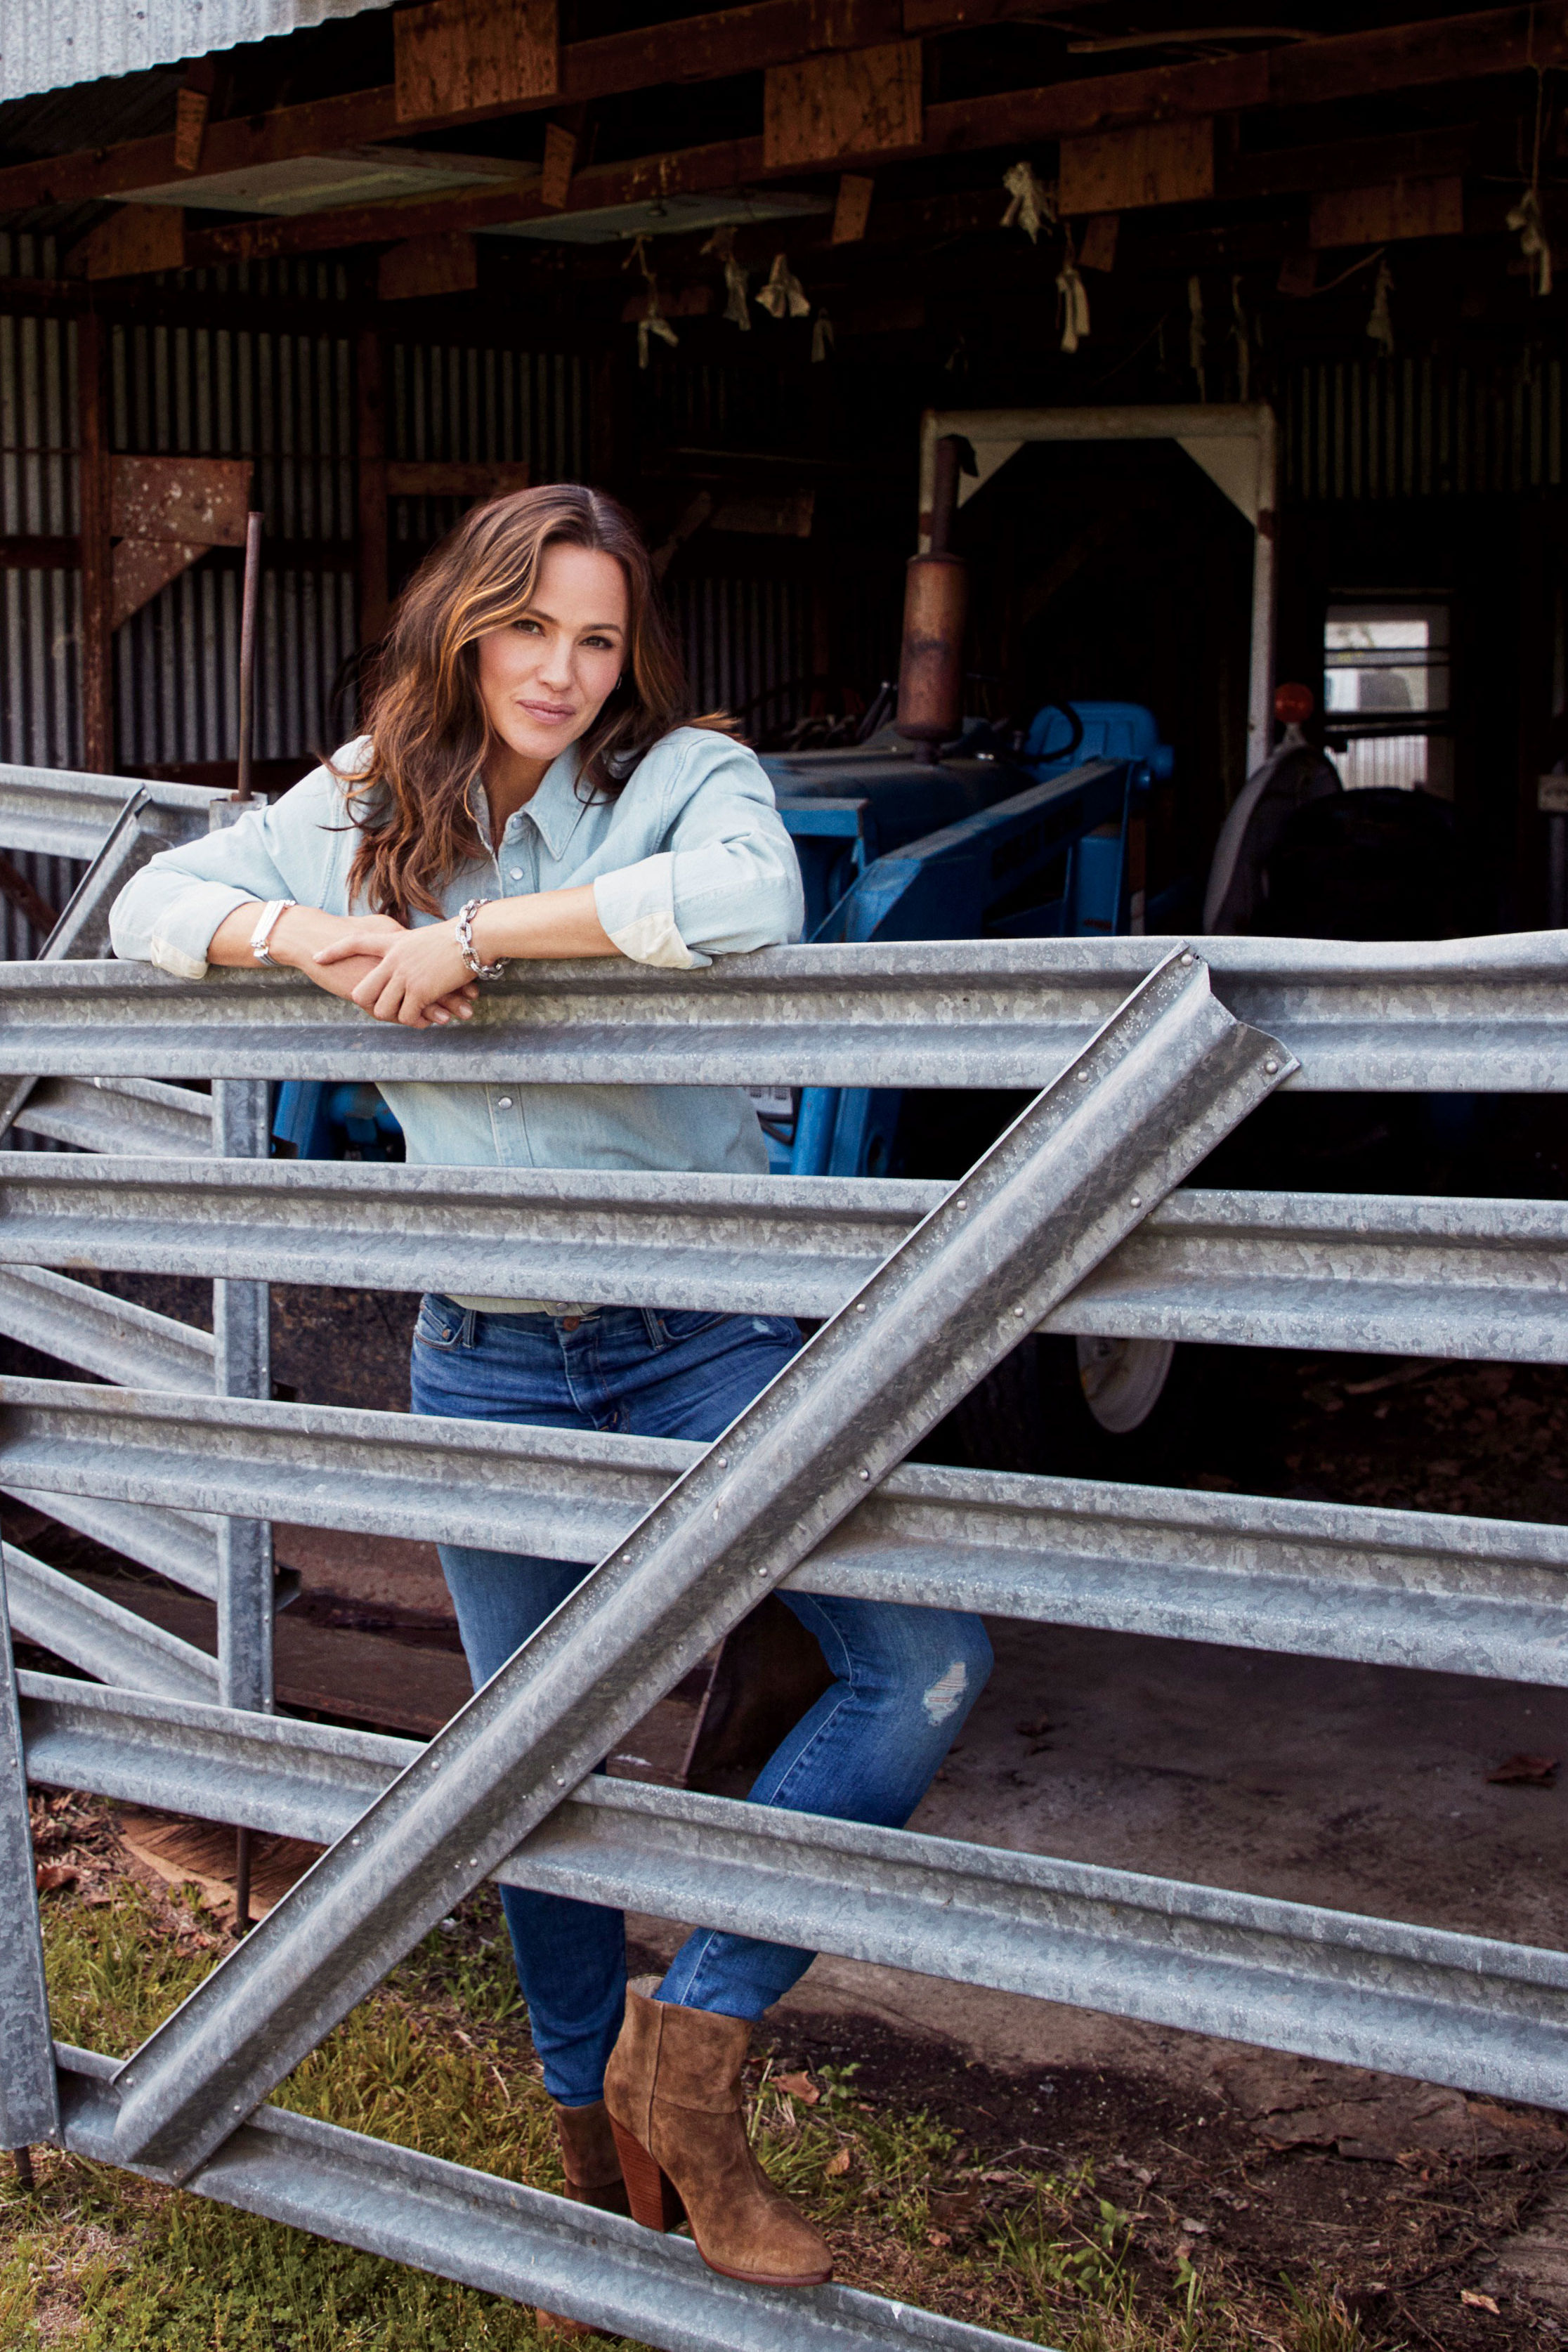 Jennifer Garner on the South's Friendliness, Friday Night Lights, and Her Favorite Meal Growing Up